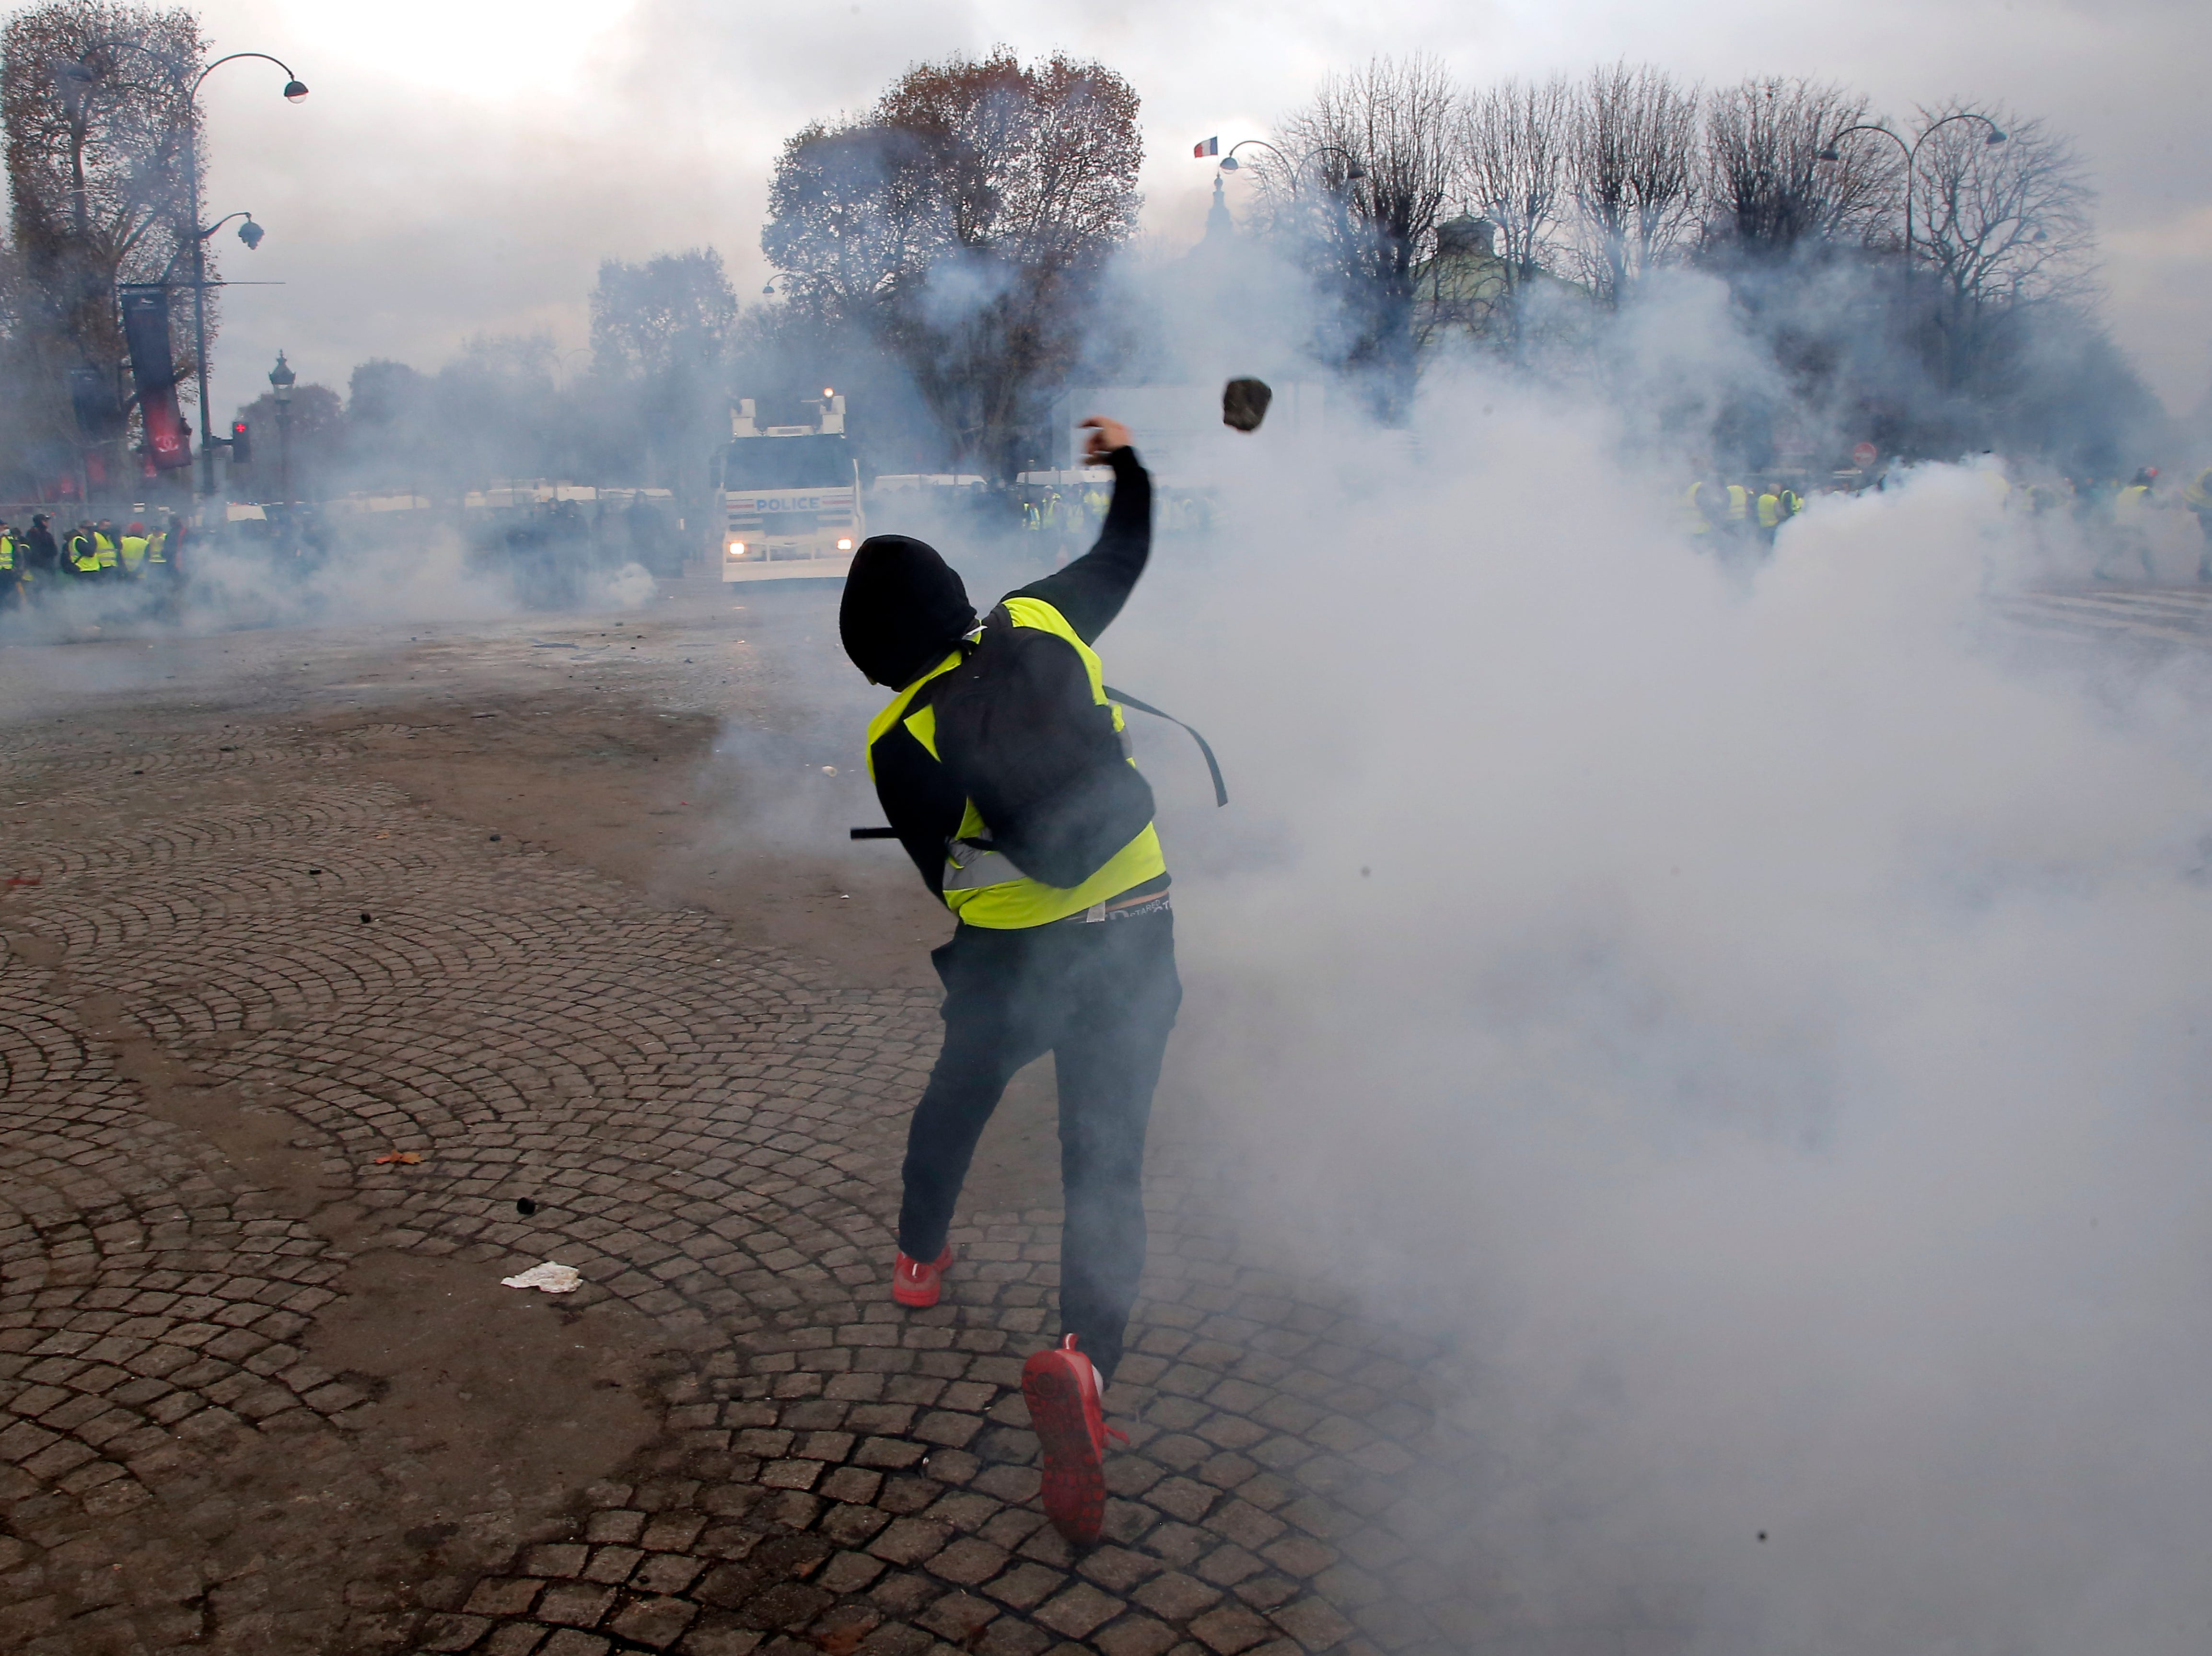 A demonstrator throws a stone to police forces past a burning barricade on the Champs-Elysees avenue during a demonstration against the rising of the fuel taxes, Saturday, Nov. 24, 2018 in Paris. French police fired tear gas and water cannons to disperse demonstrators in Paris Saturday, as thousands gathered in the capital and staged road blockades across the nation to vent anger against rising fuel taxes and Emmanuel Macron's presidency.